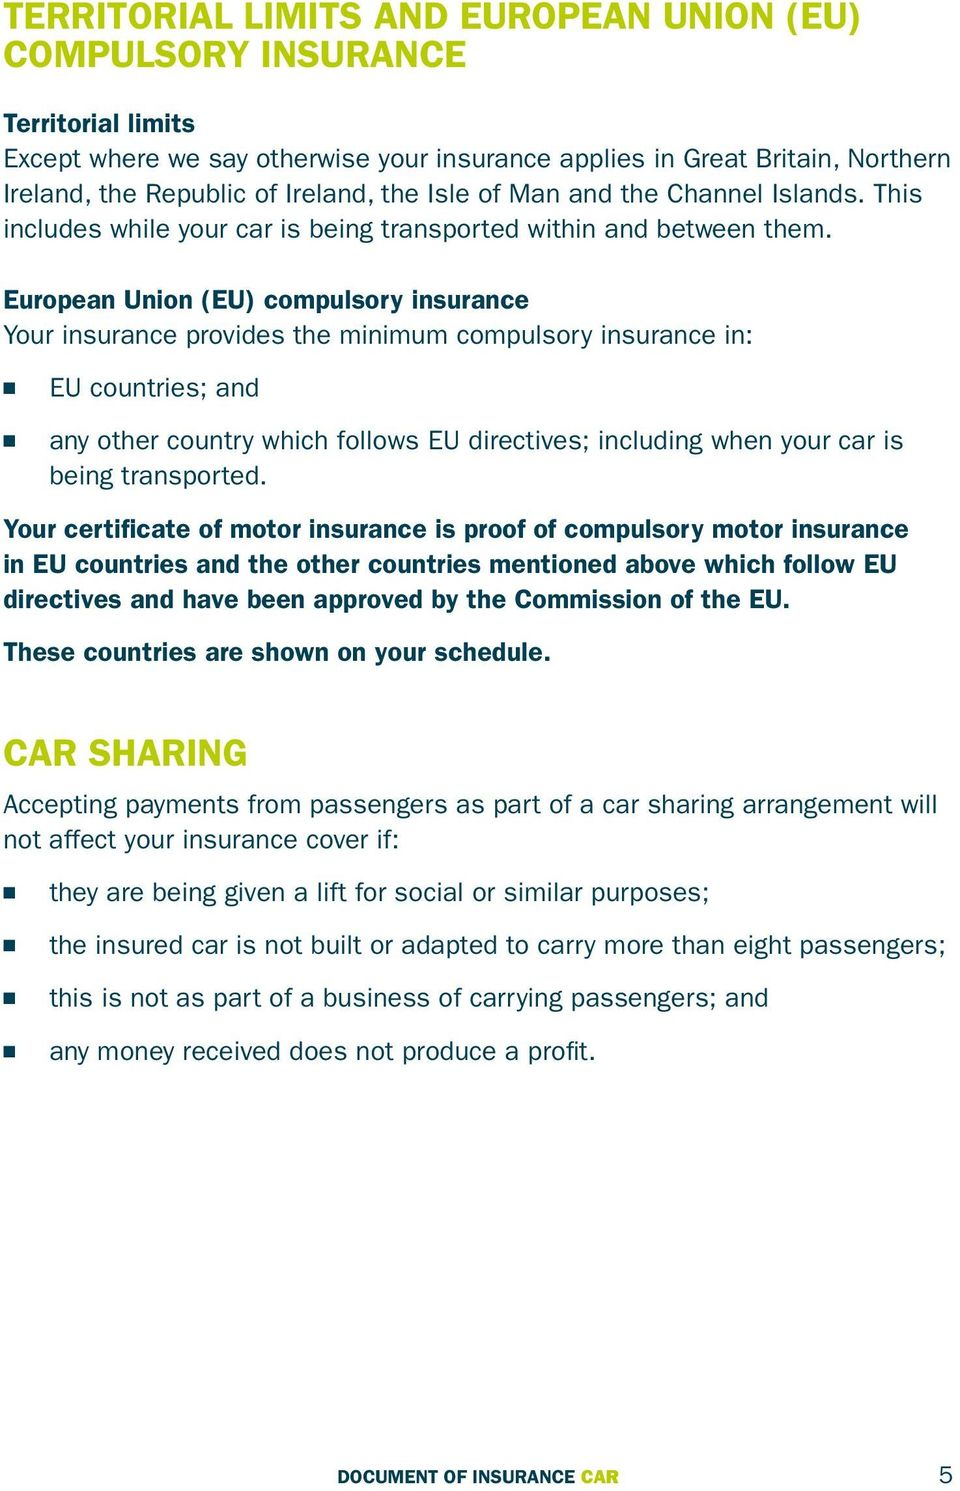 Europea Uio (EU) compulsory isurace Your isurace provides the miimum compulsory isurace i: EU coutries; ad ay other coutry which follows EU directives; icludig whe your car is beig trasported.